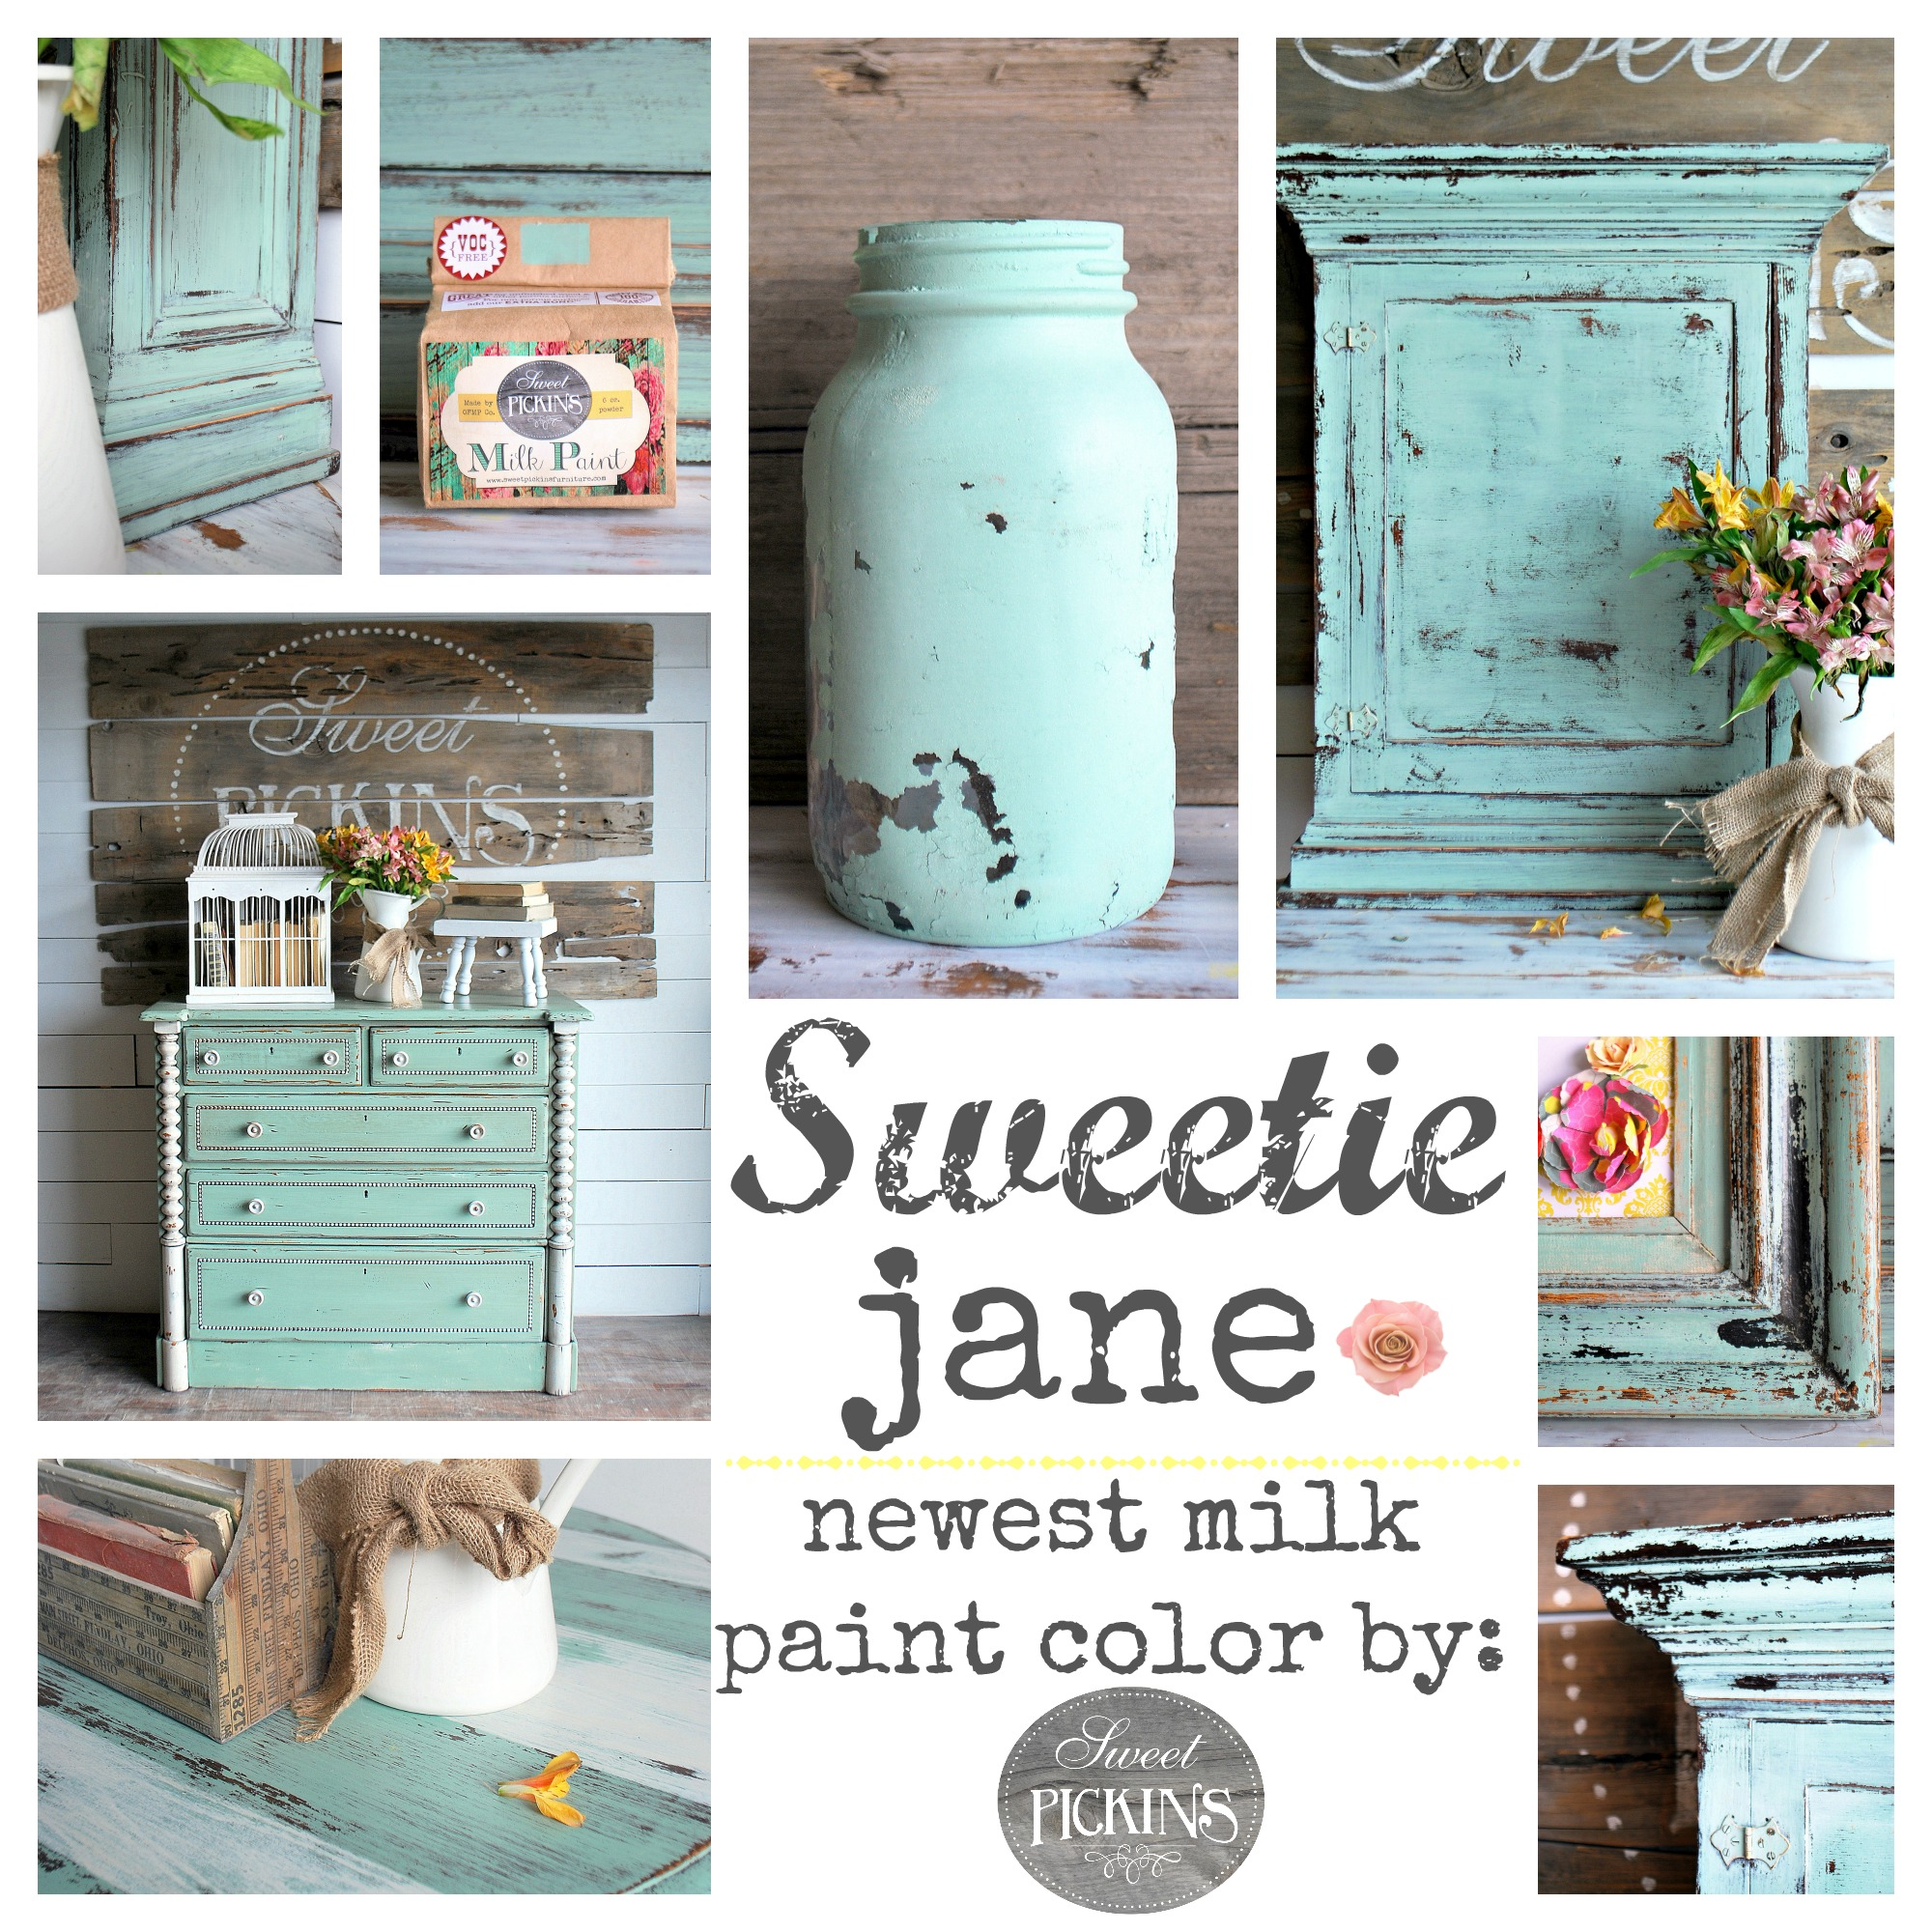 3 new sweet pickins milk paint colors are here sweet pickins galvanized is a medium true gray color i love this color especially with a dark wax over it sweet pickins milk paint nvjuhfo Choice Image